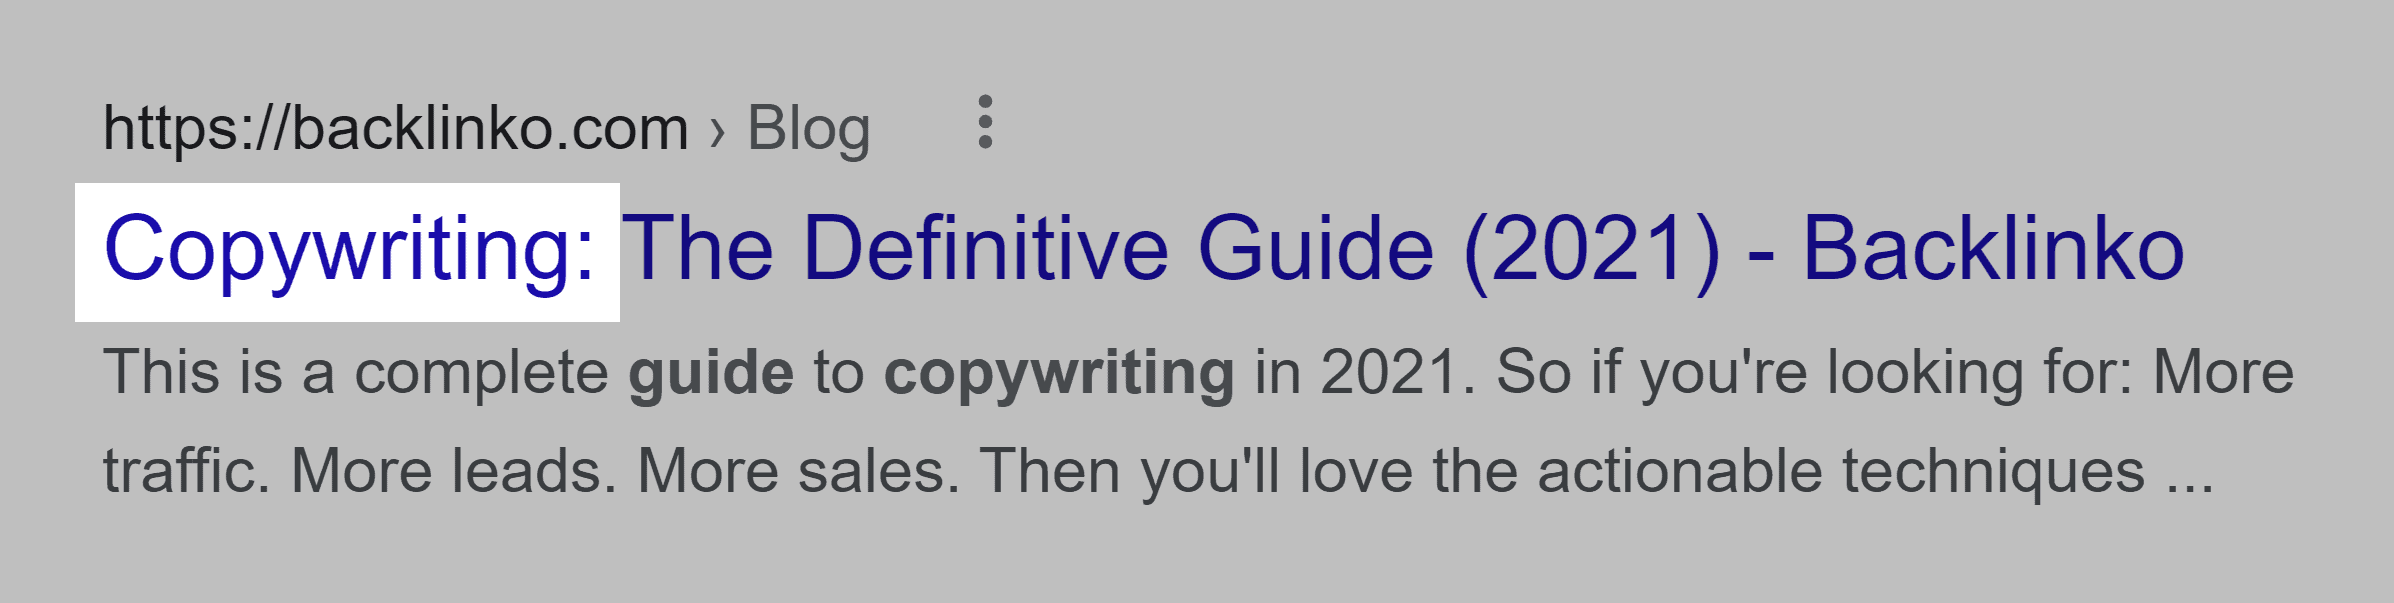 Copywriting guide – Keyword in title